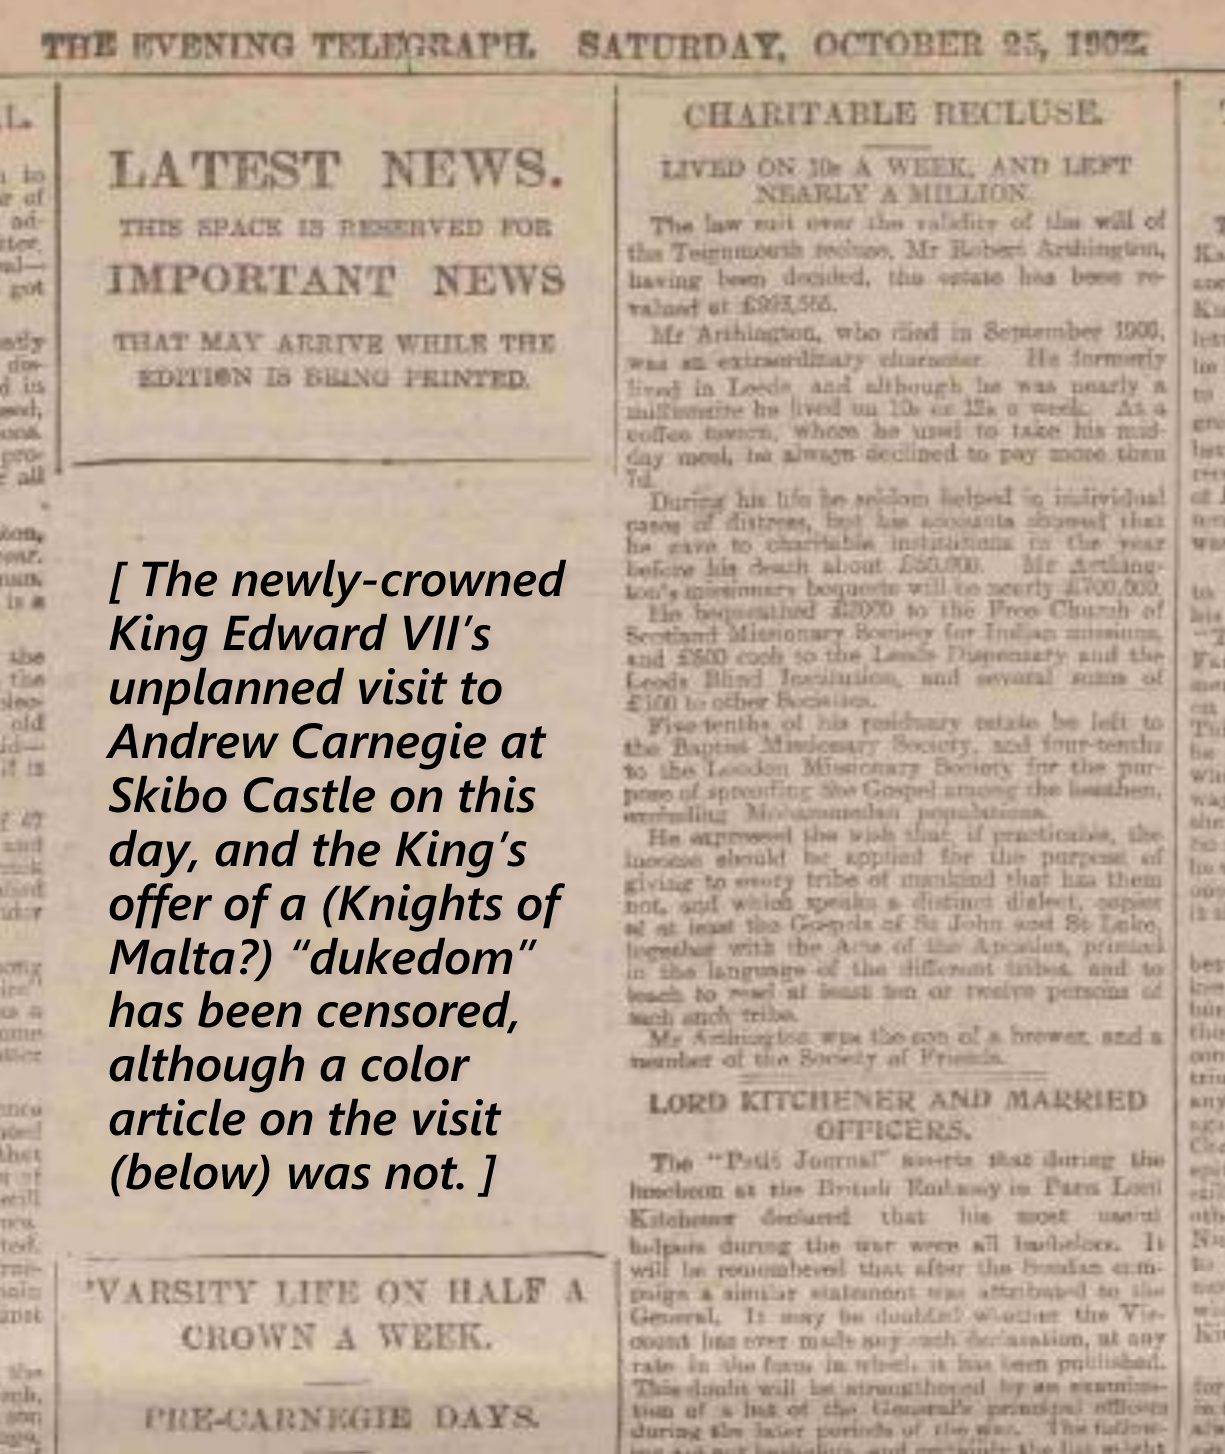 Editor. (Oct. 25, 1902). The King at Skibo (Andrew Carnegie's Castle), p. 3. Dundee Evening Telegraph.